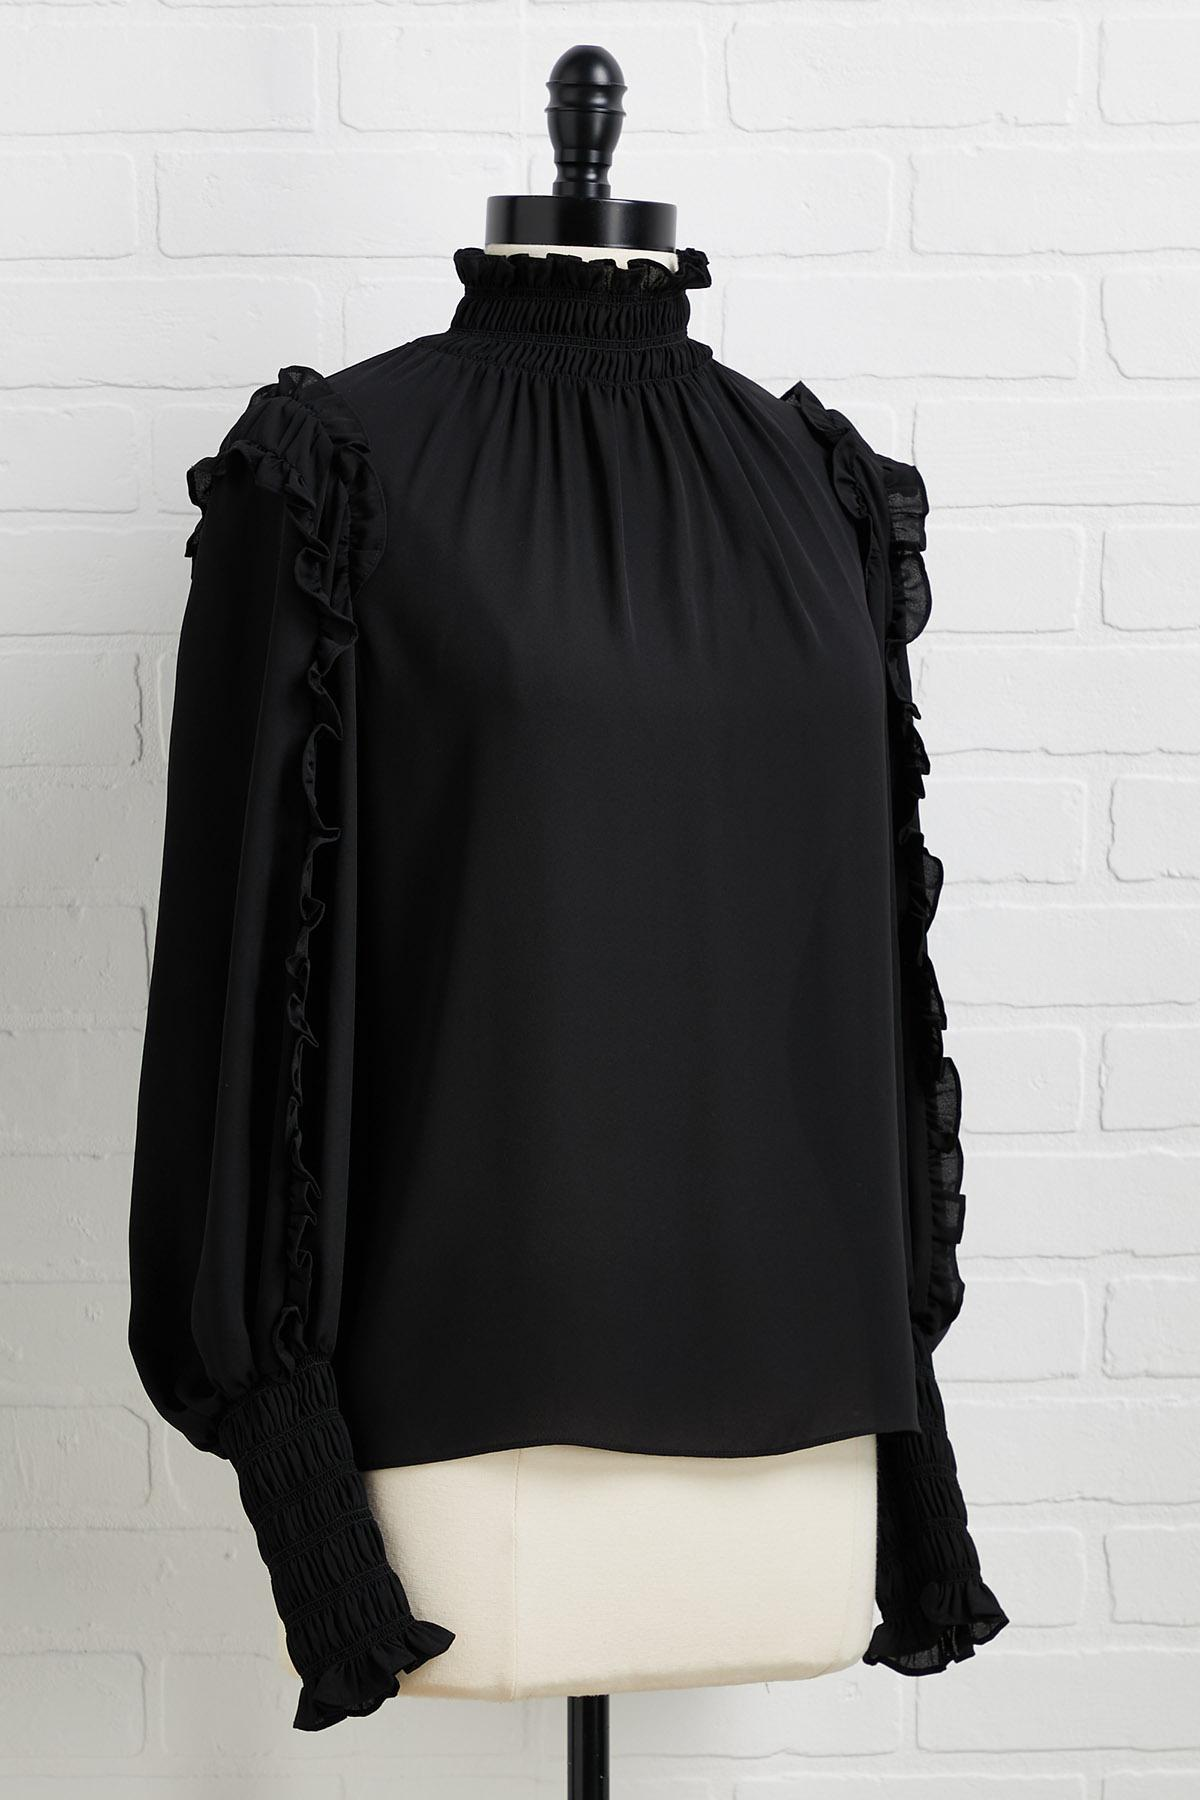 Give Me The Frills Top